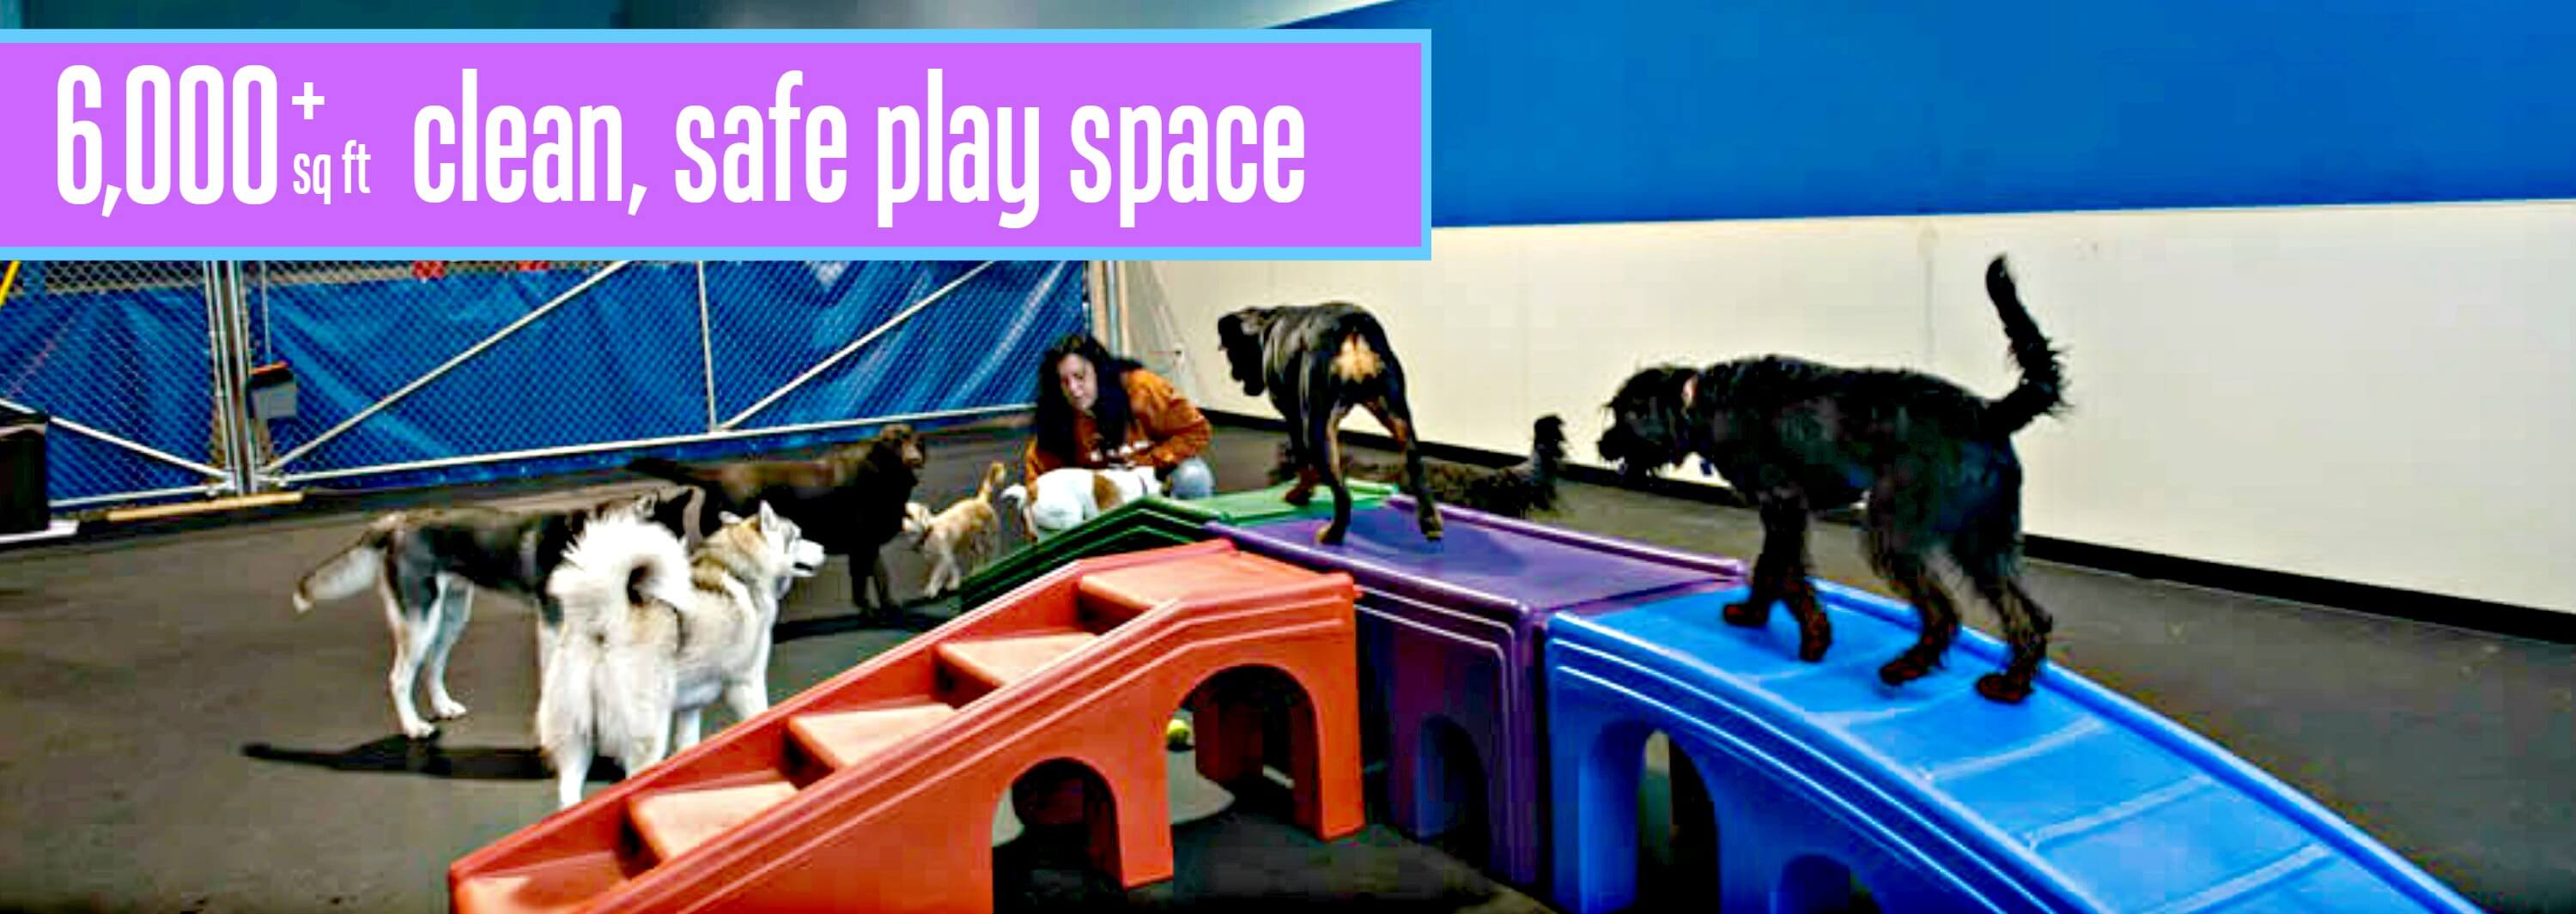 EastFallsLocal play space text 8 x 10